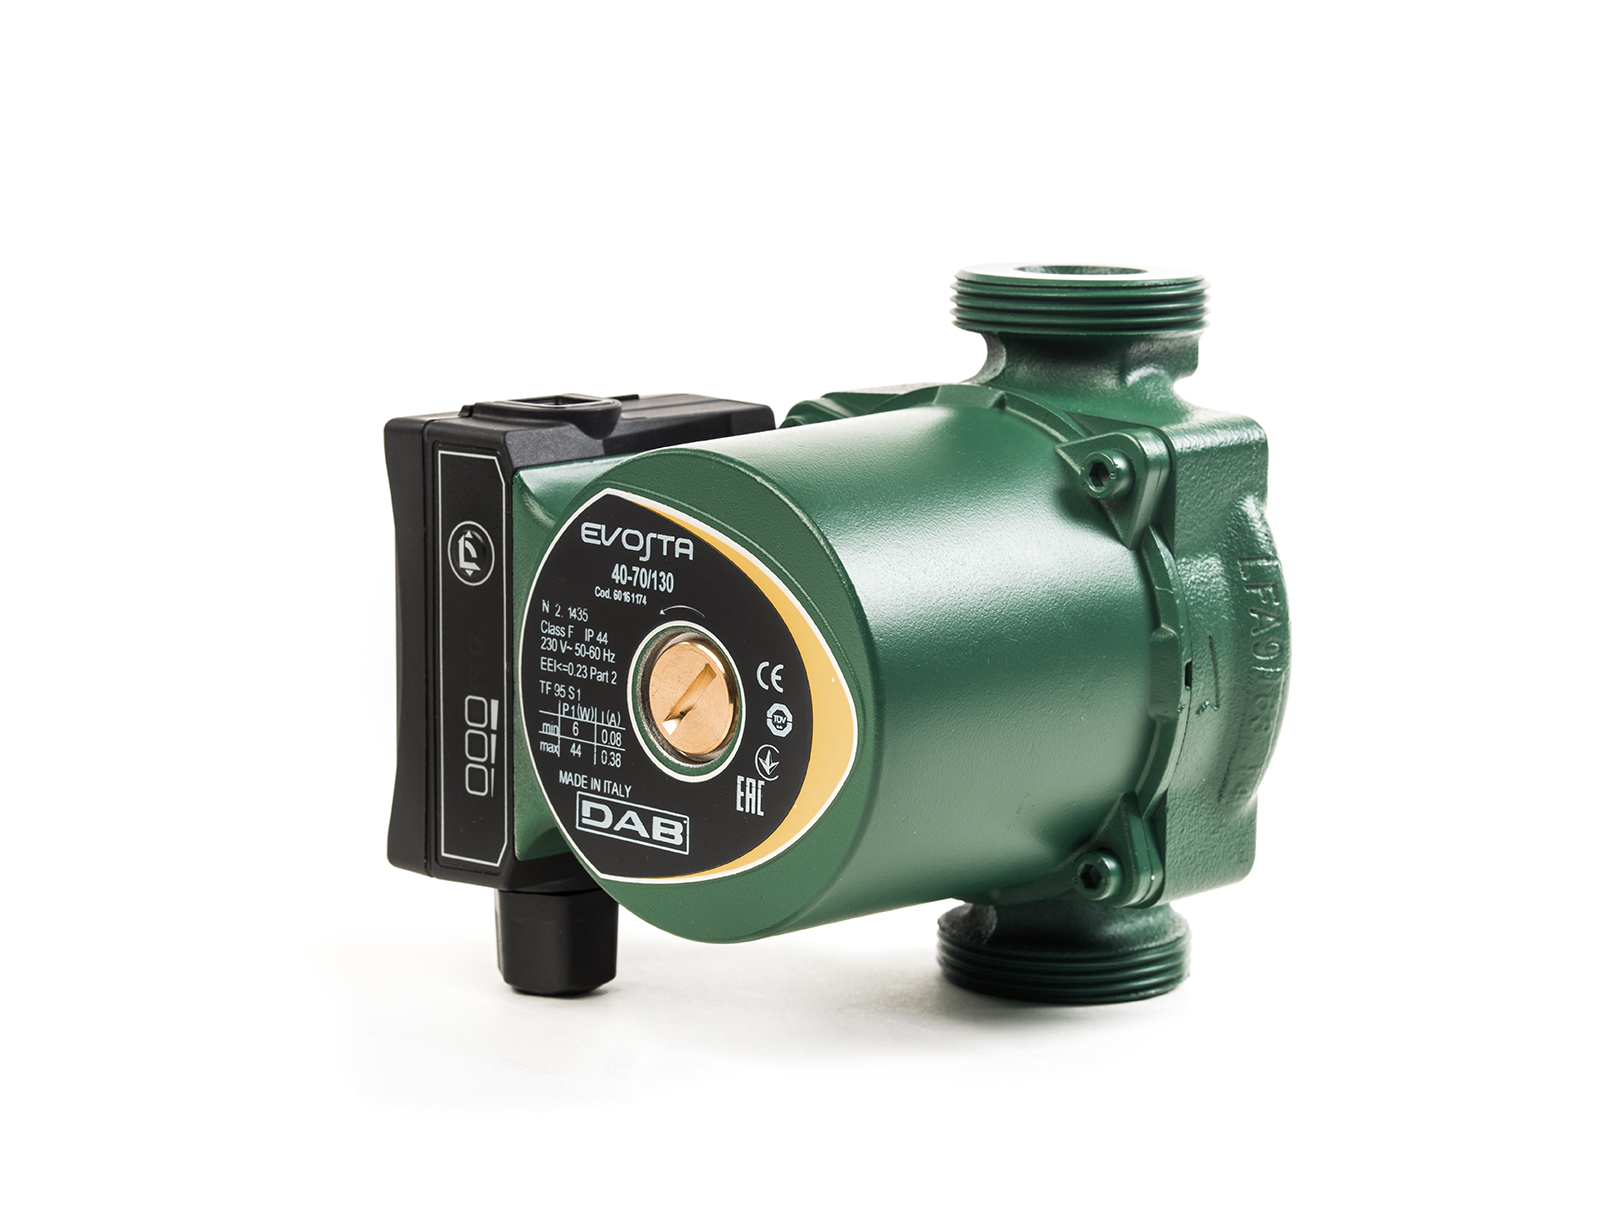 DAB Evosta 40-70/130 Central Heating Circulating Pump